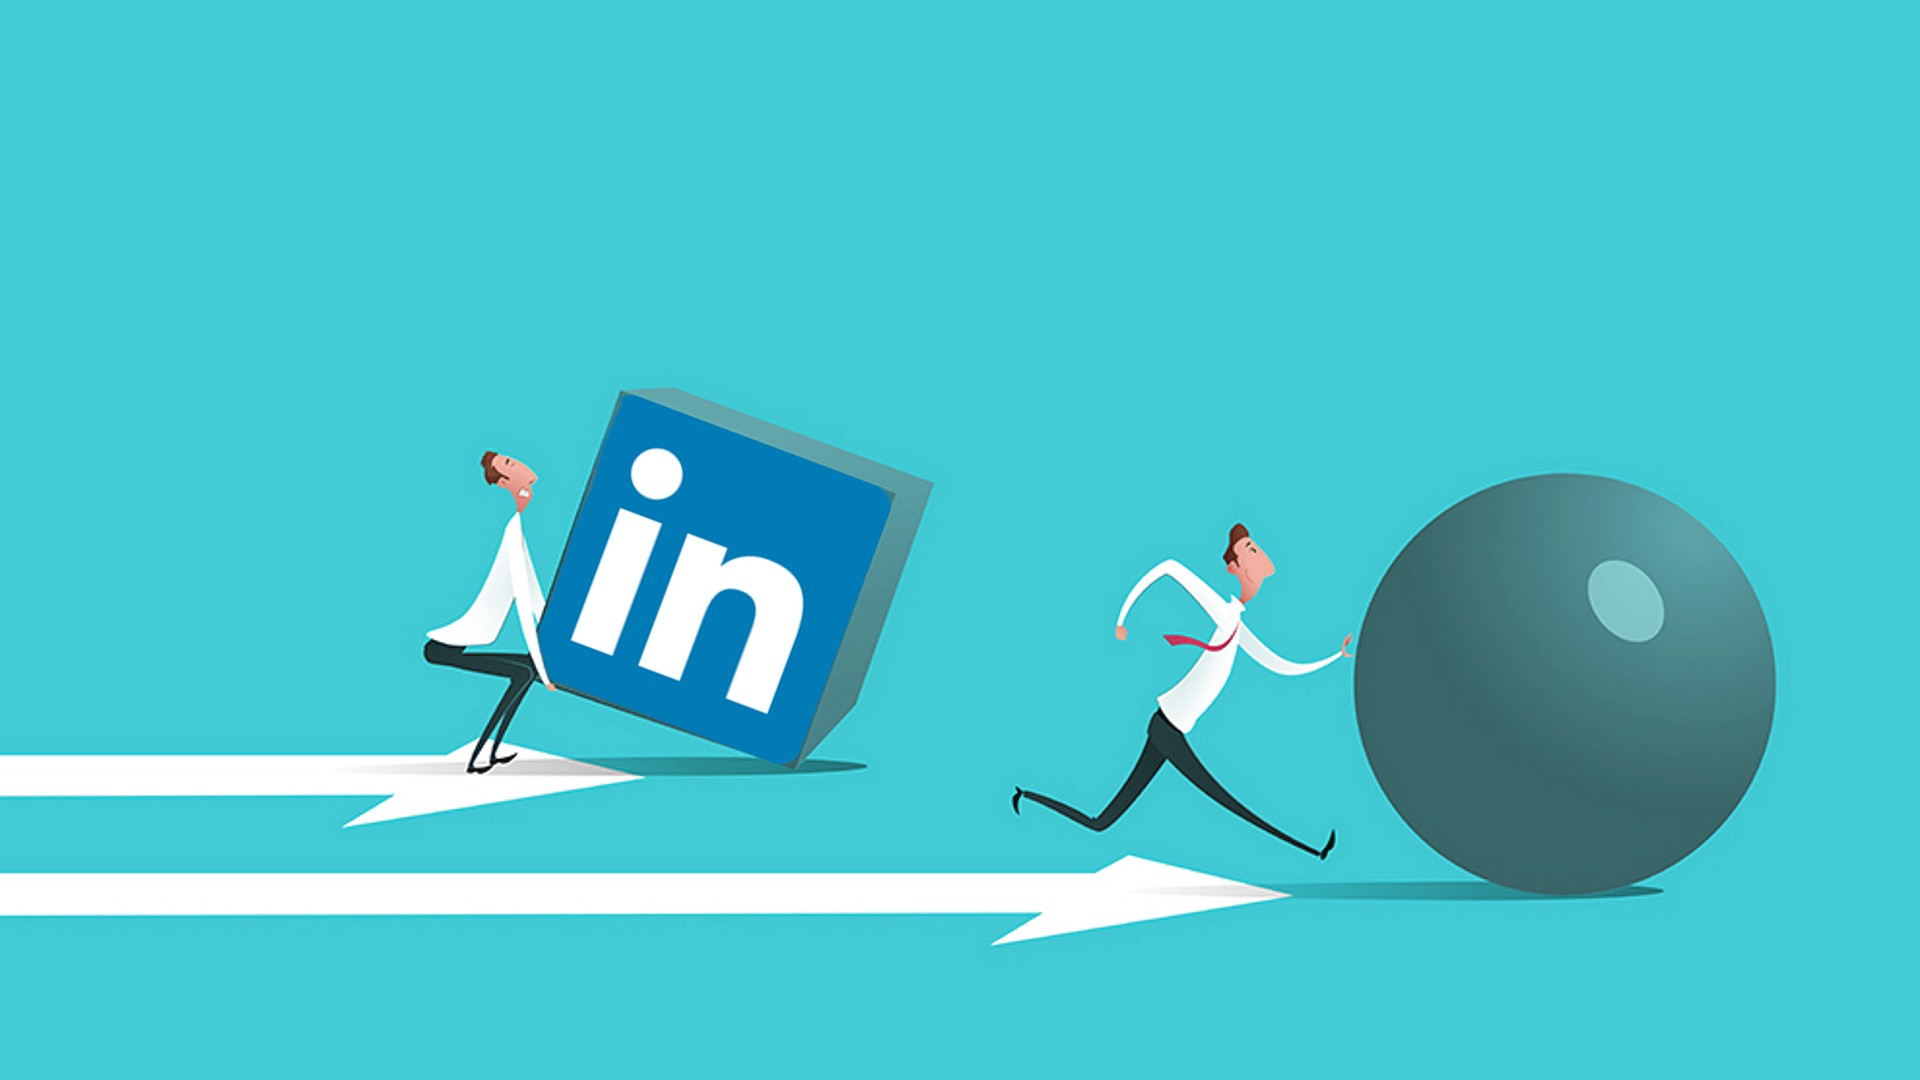 LinkedIn and the monumental effort to make it useful as a network